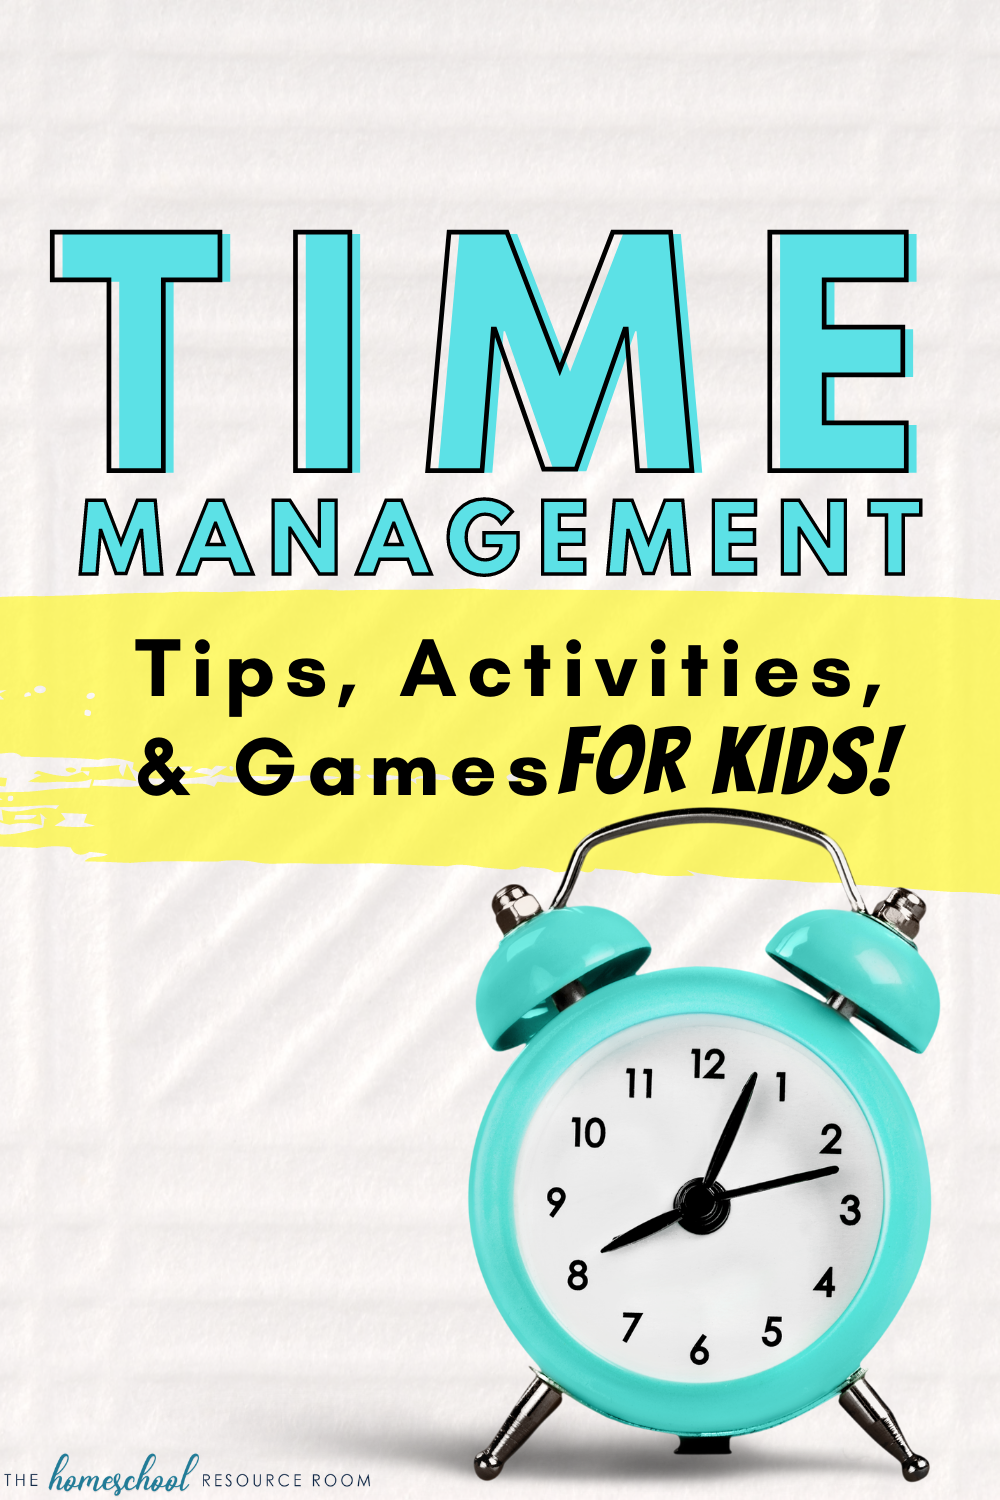 Kids and teens with ADHD, Autism, and other diagnoses often need time management activities to help them succeed in school and at home.